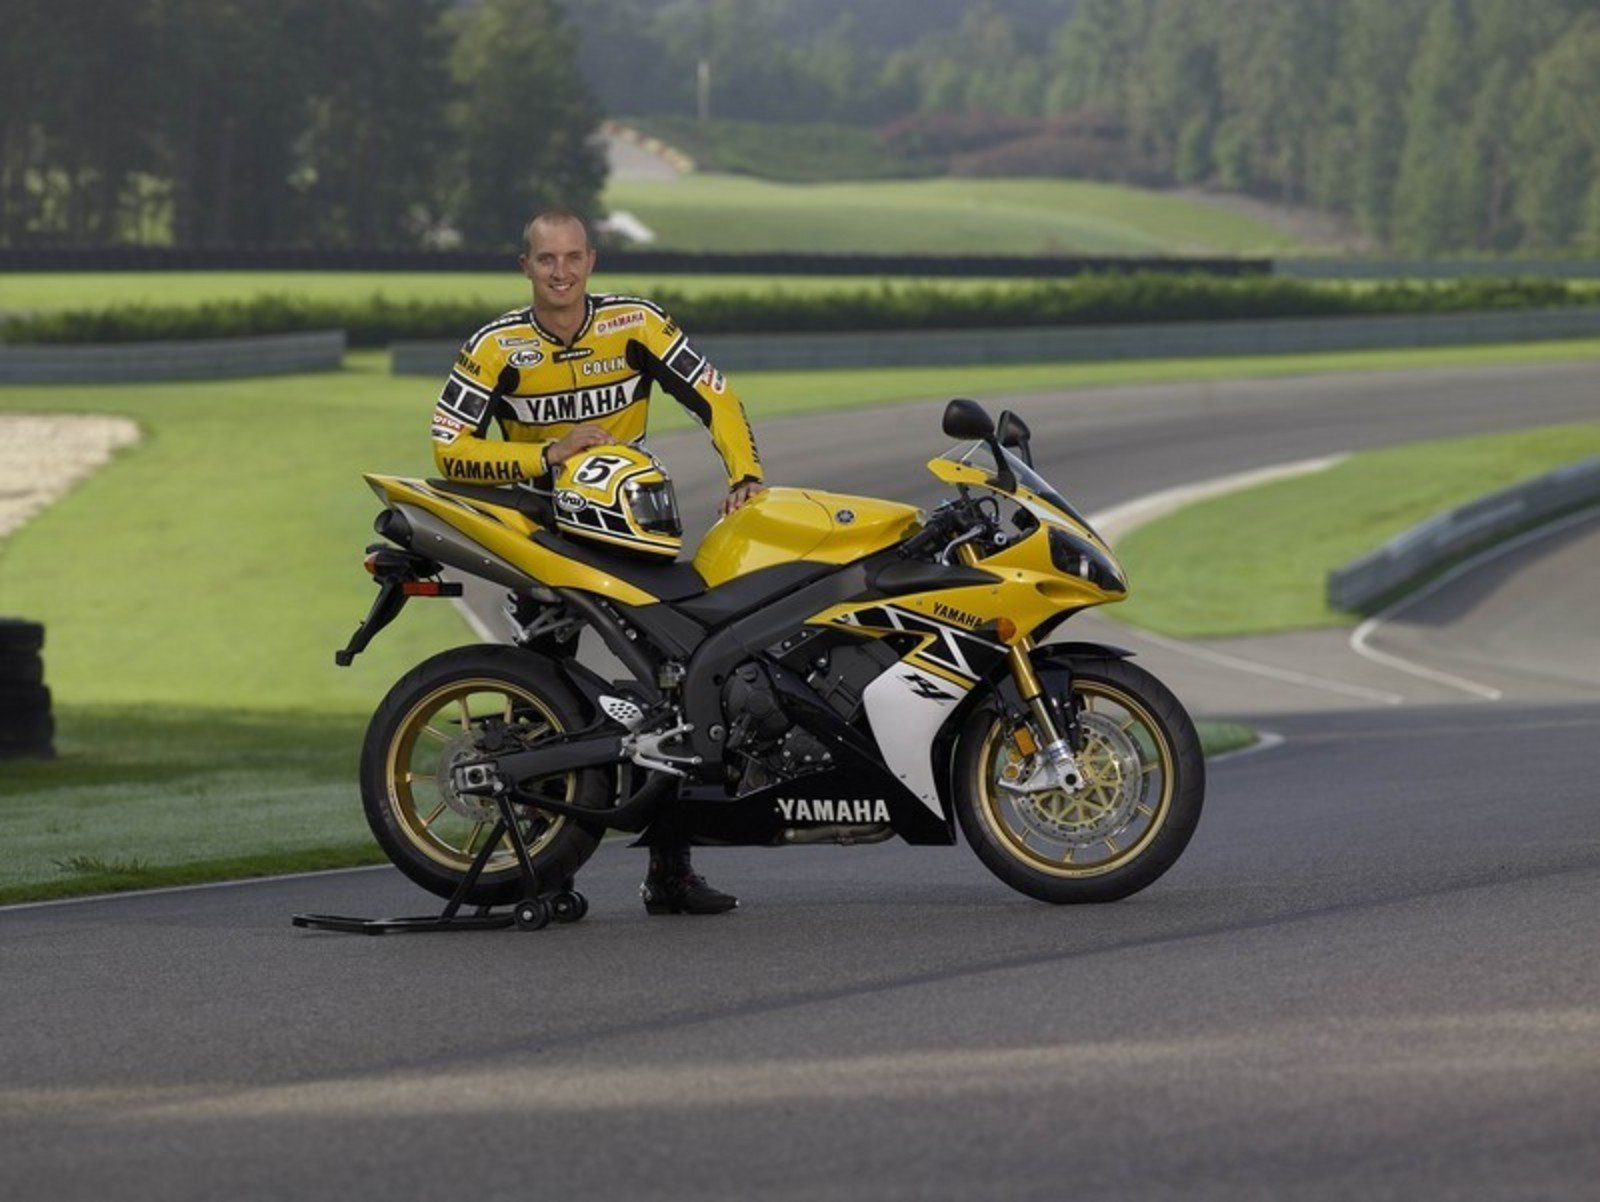 2006 yamaha yz r1 le picture 45812 motorcycle review for 2006 yamaha r1